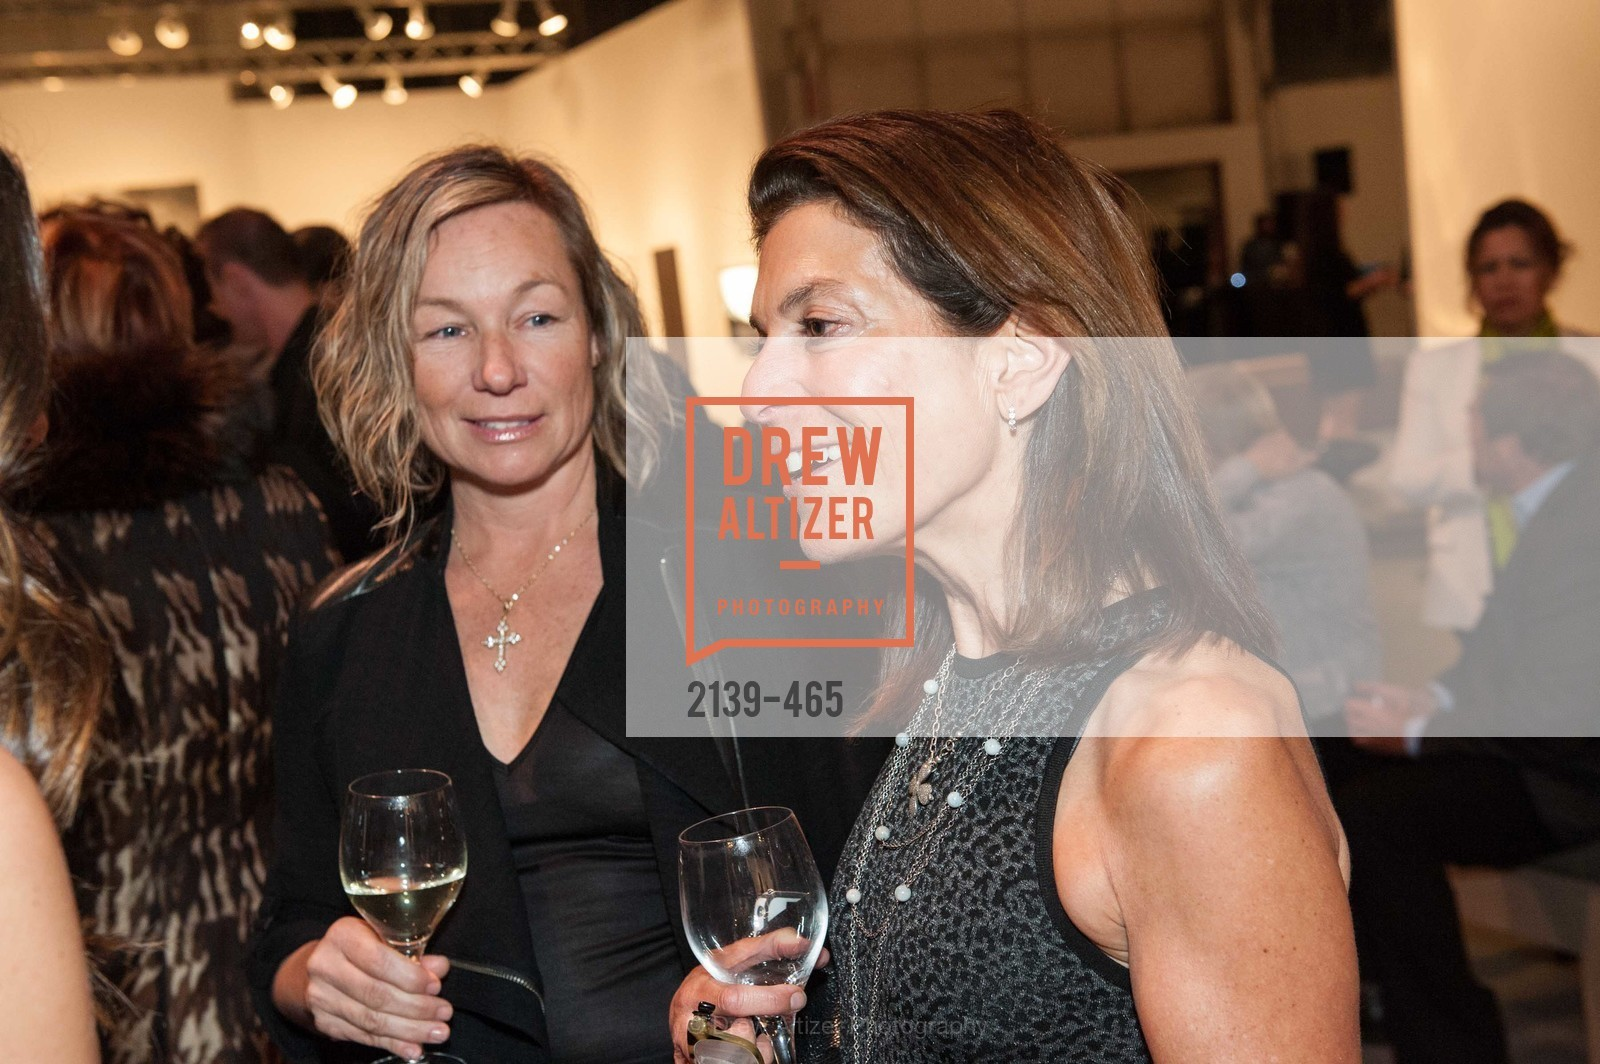 Emily Carroll, Susan Swig, FOG Design + Art Preview Gala, US. US, January 16th, 2014,Drew Altizer, Drew Altizer Photography, full-service event agency, private events, San Francisco photographer, photographer California